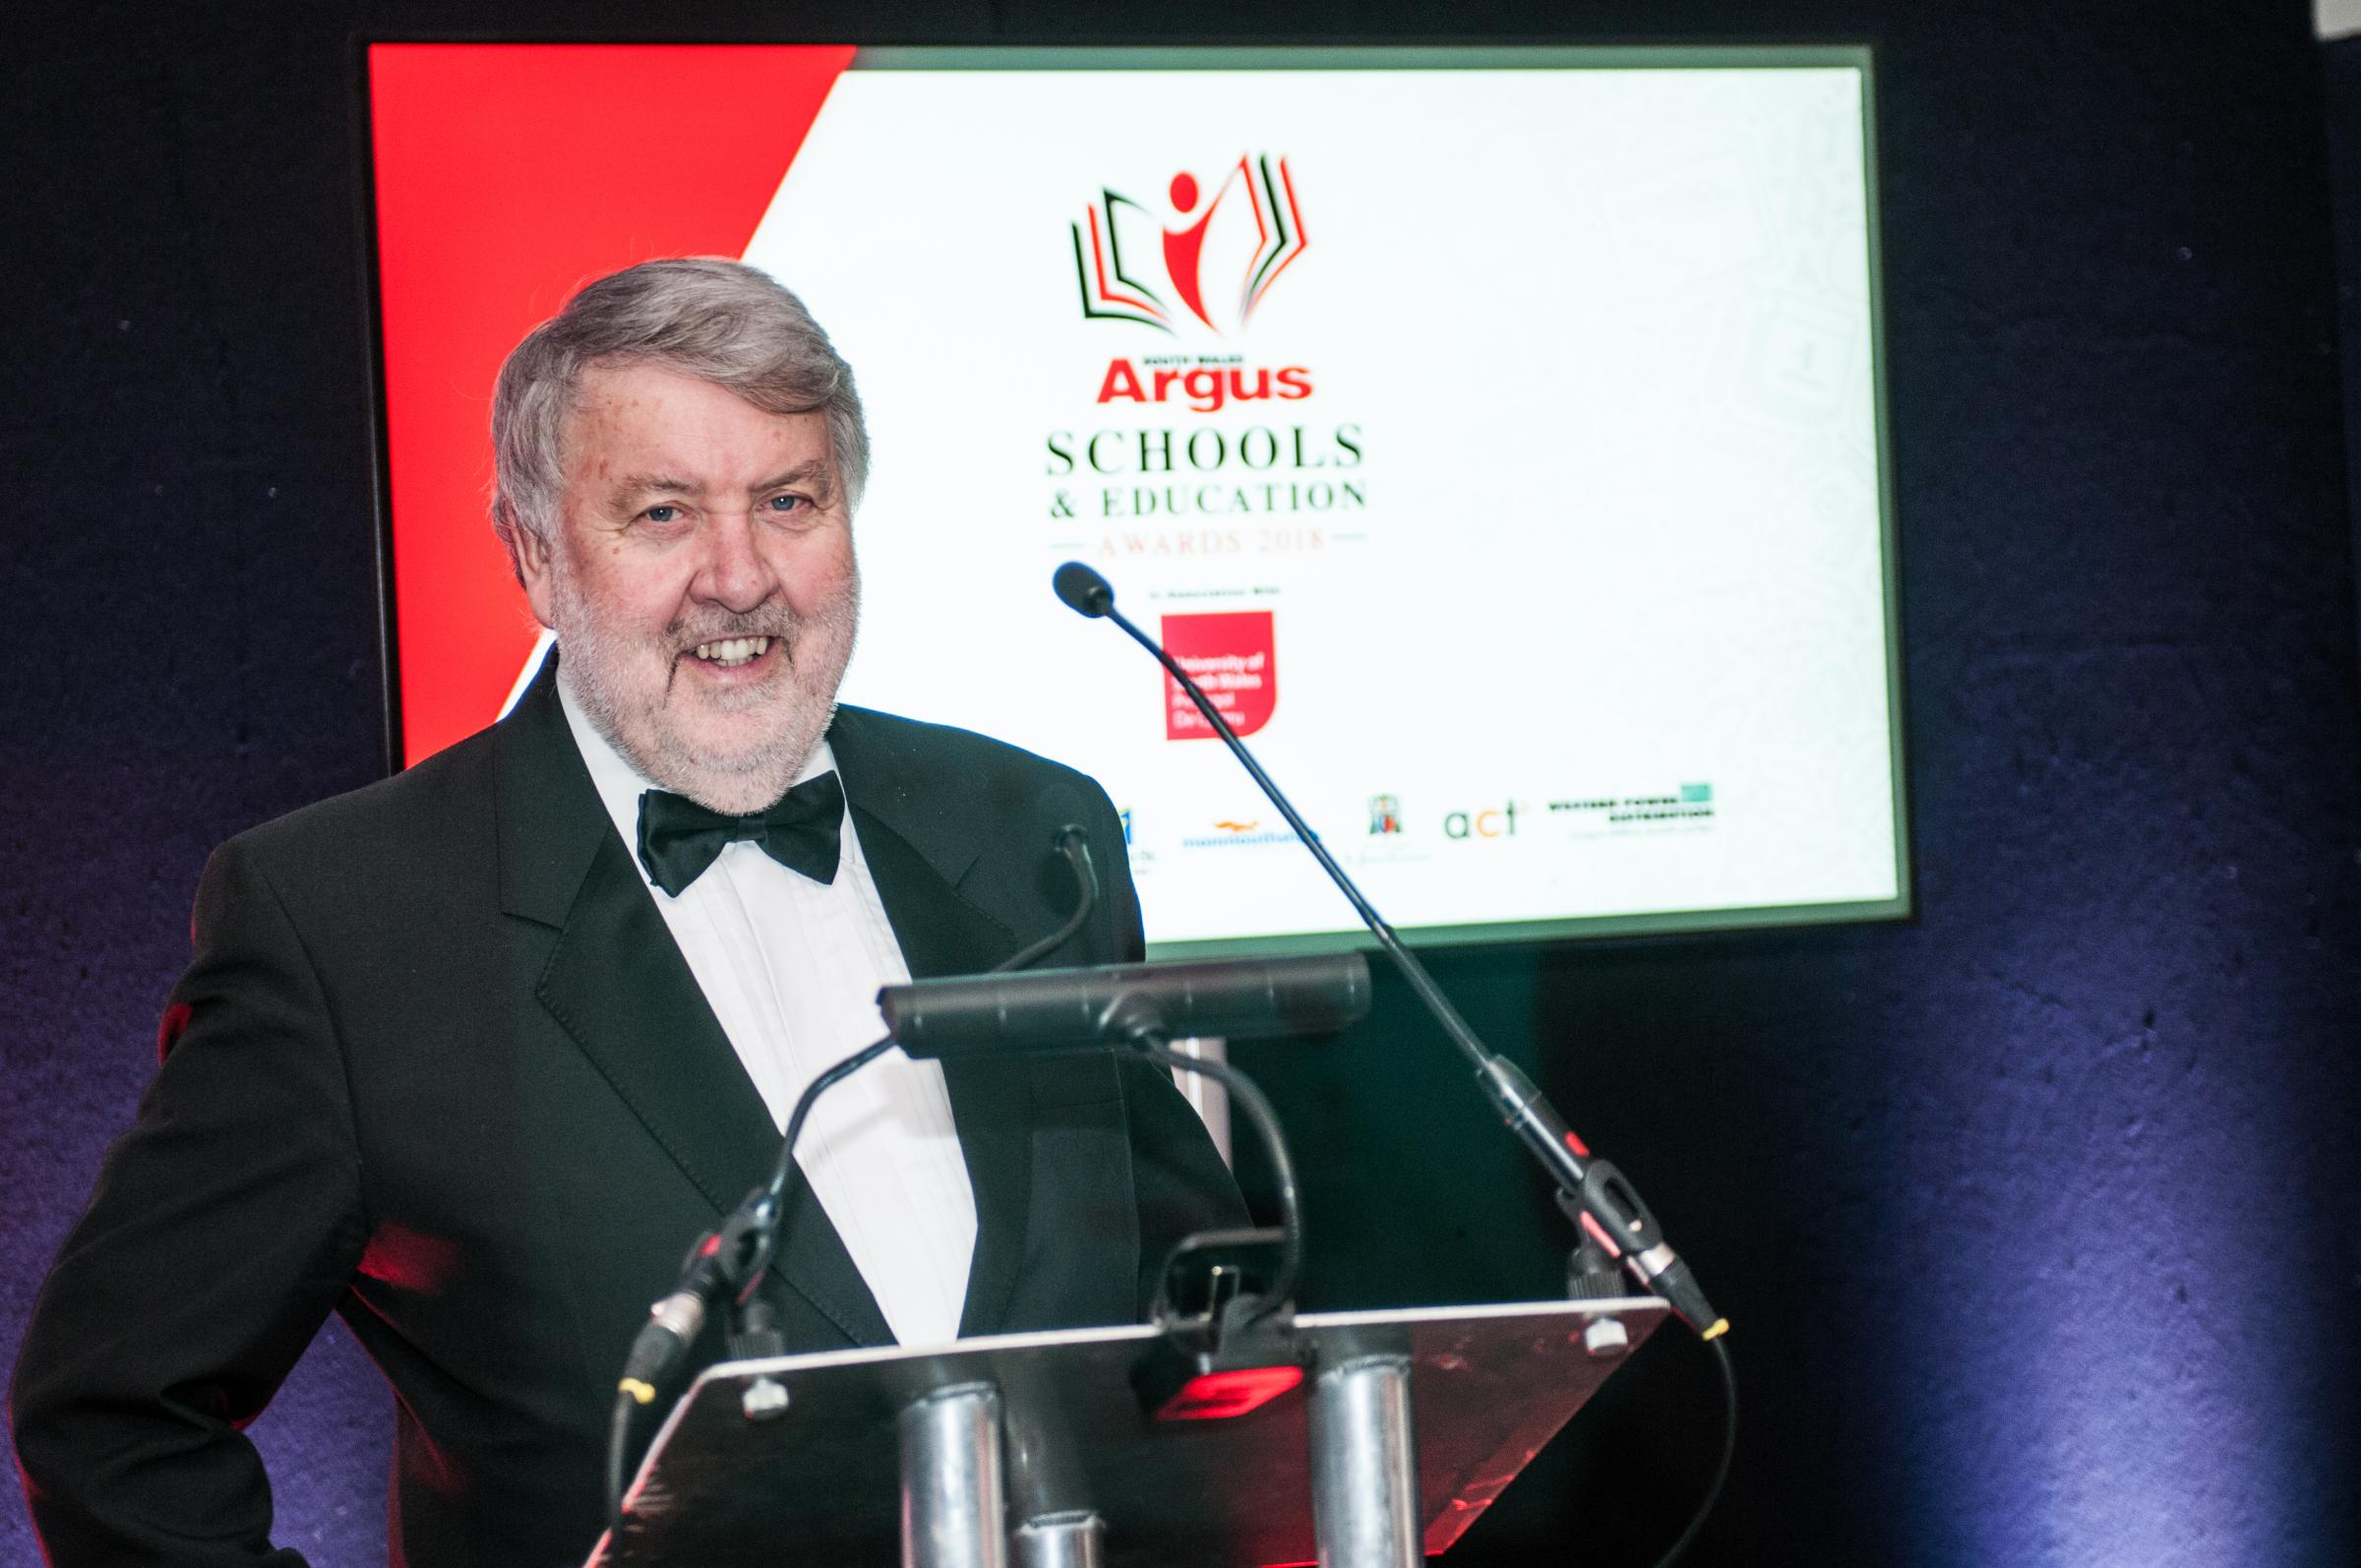 Guest speaker Roy Noble at the South Wales Argus Schools and Education Awards 2018.